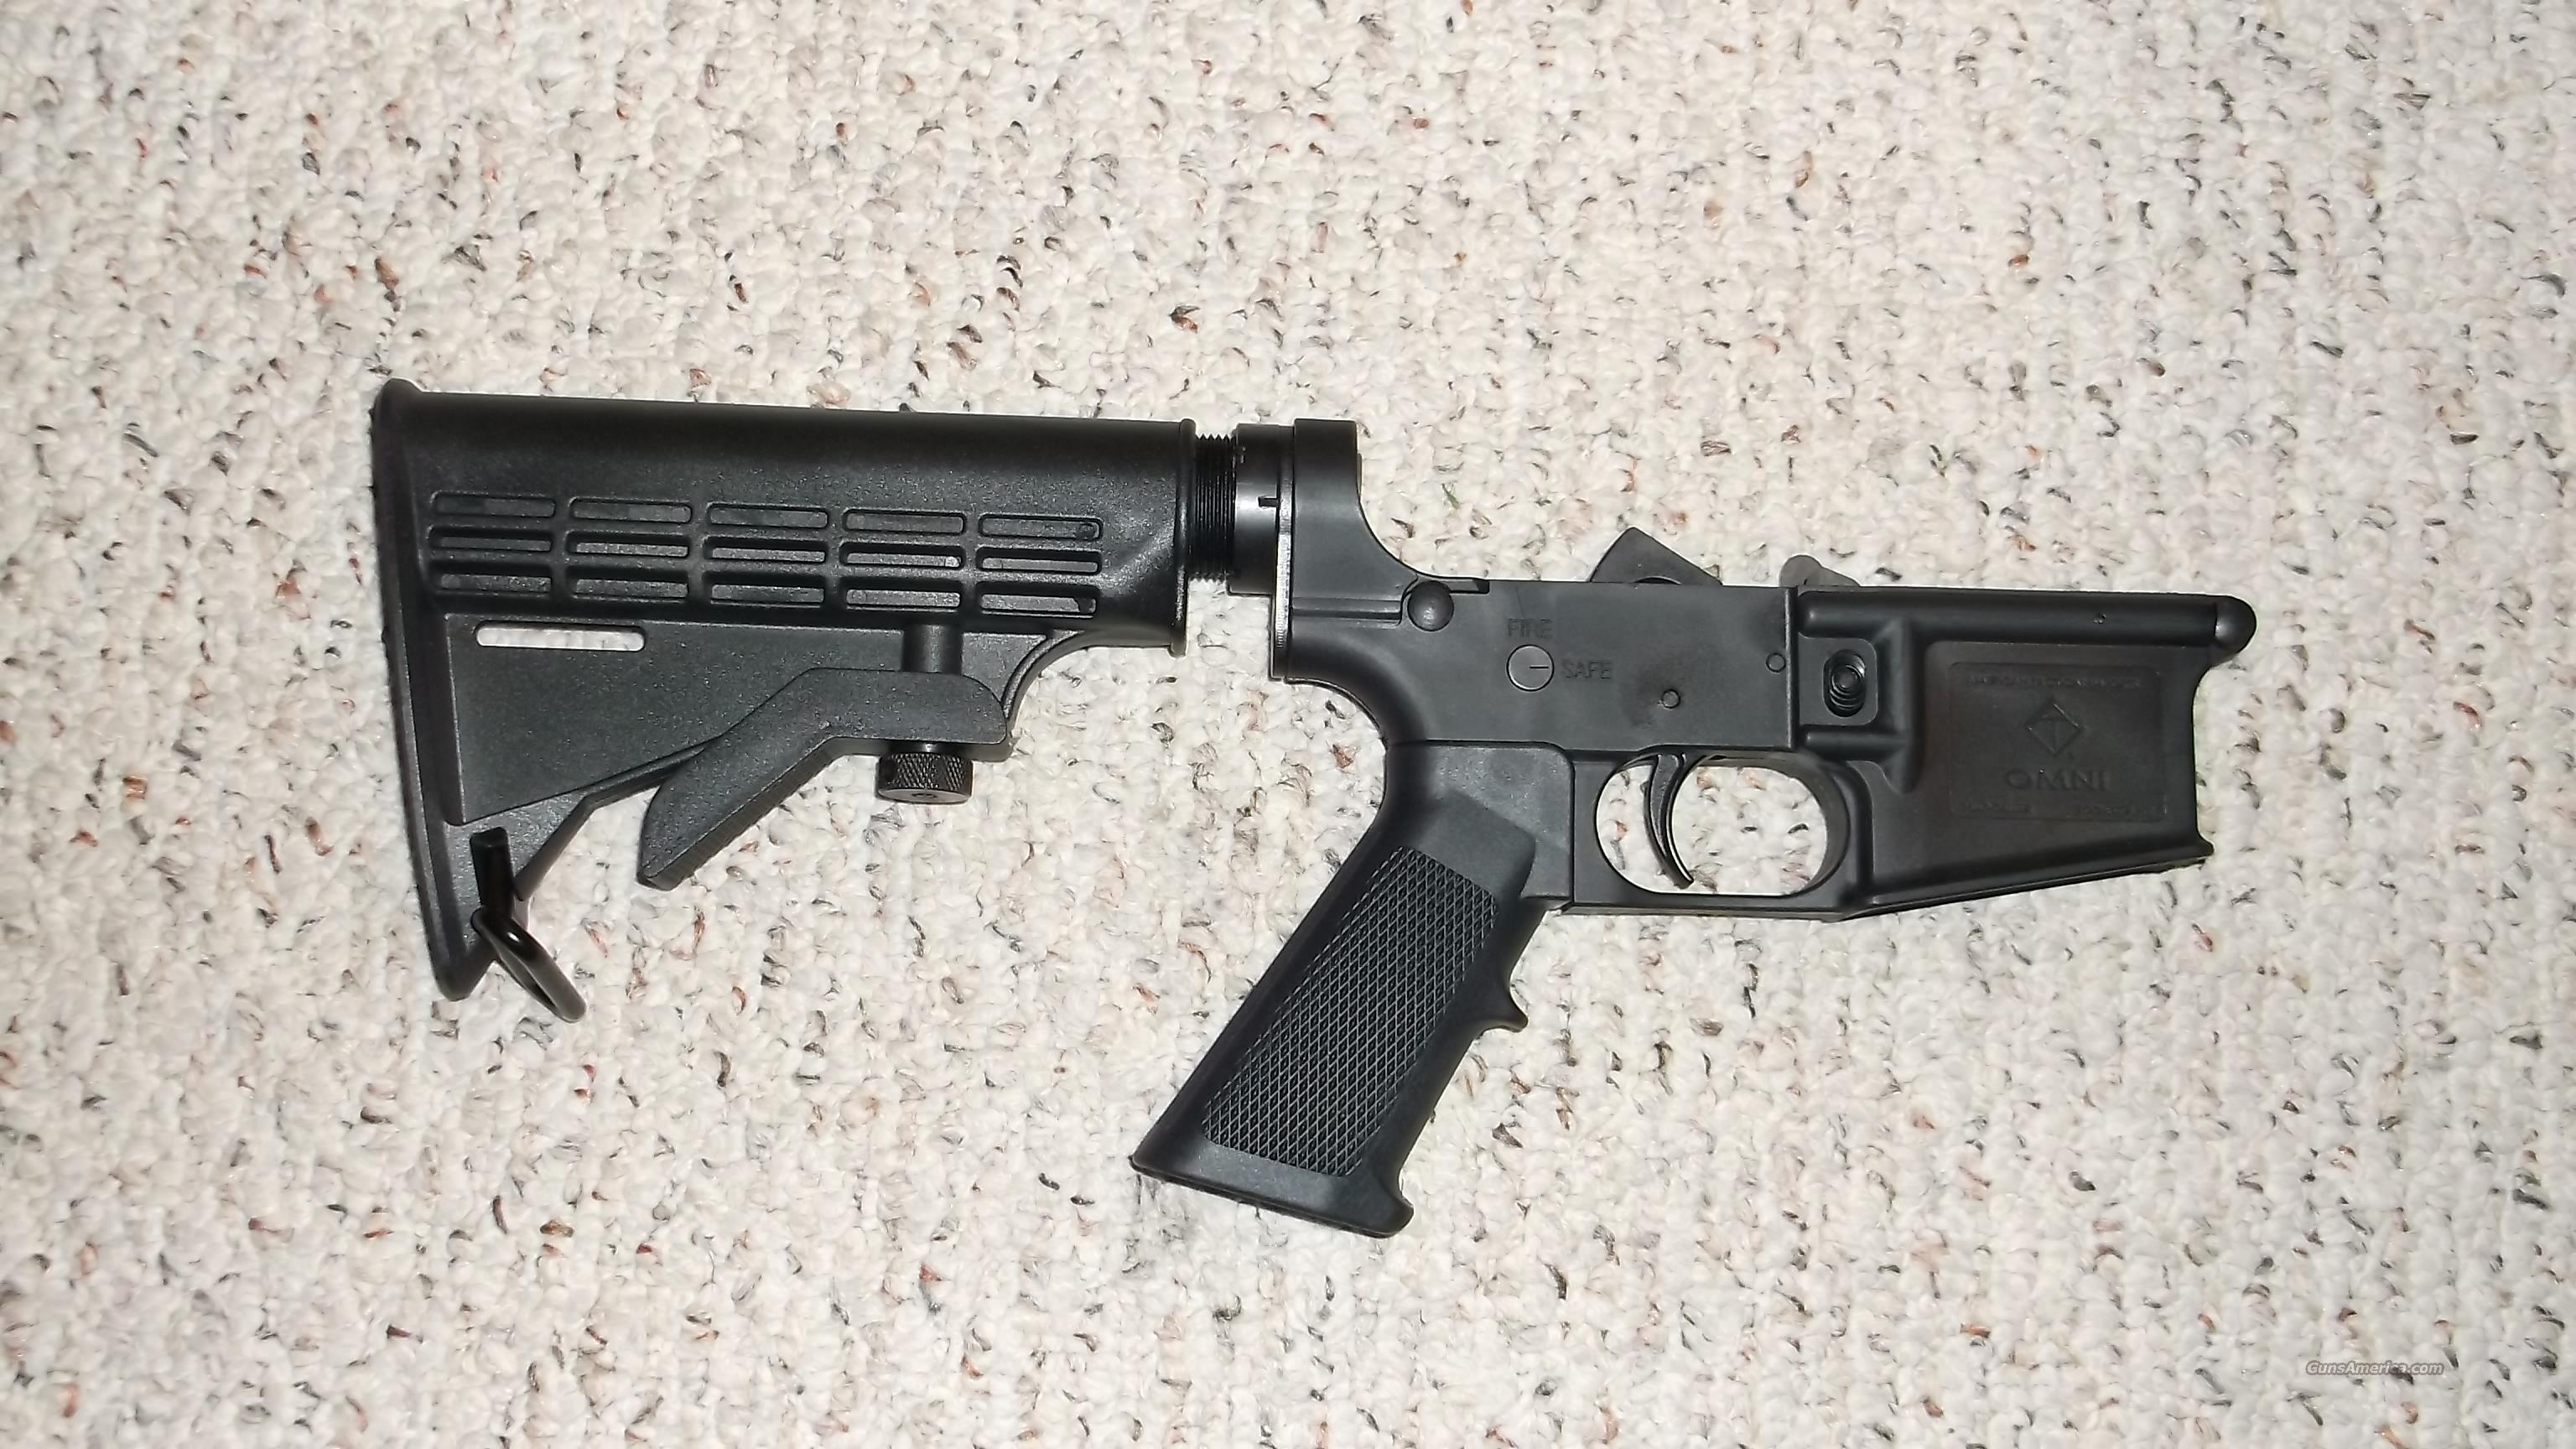 OMNI ATI COMPLETE POLY LOWER FREE S/H  Guns > Rifles > AR-15 Rifles - Small Manufacturers > Lower Only